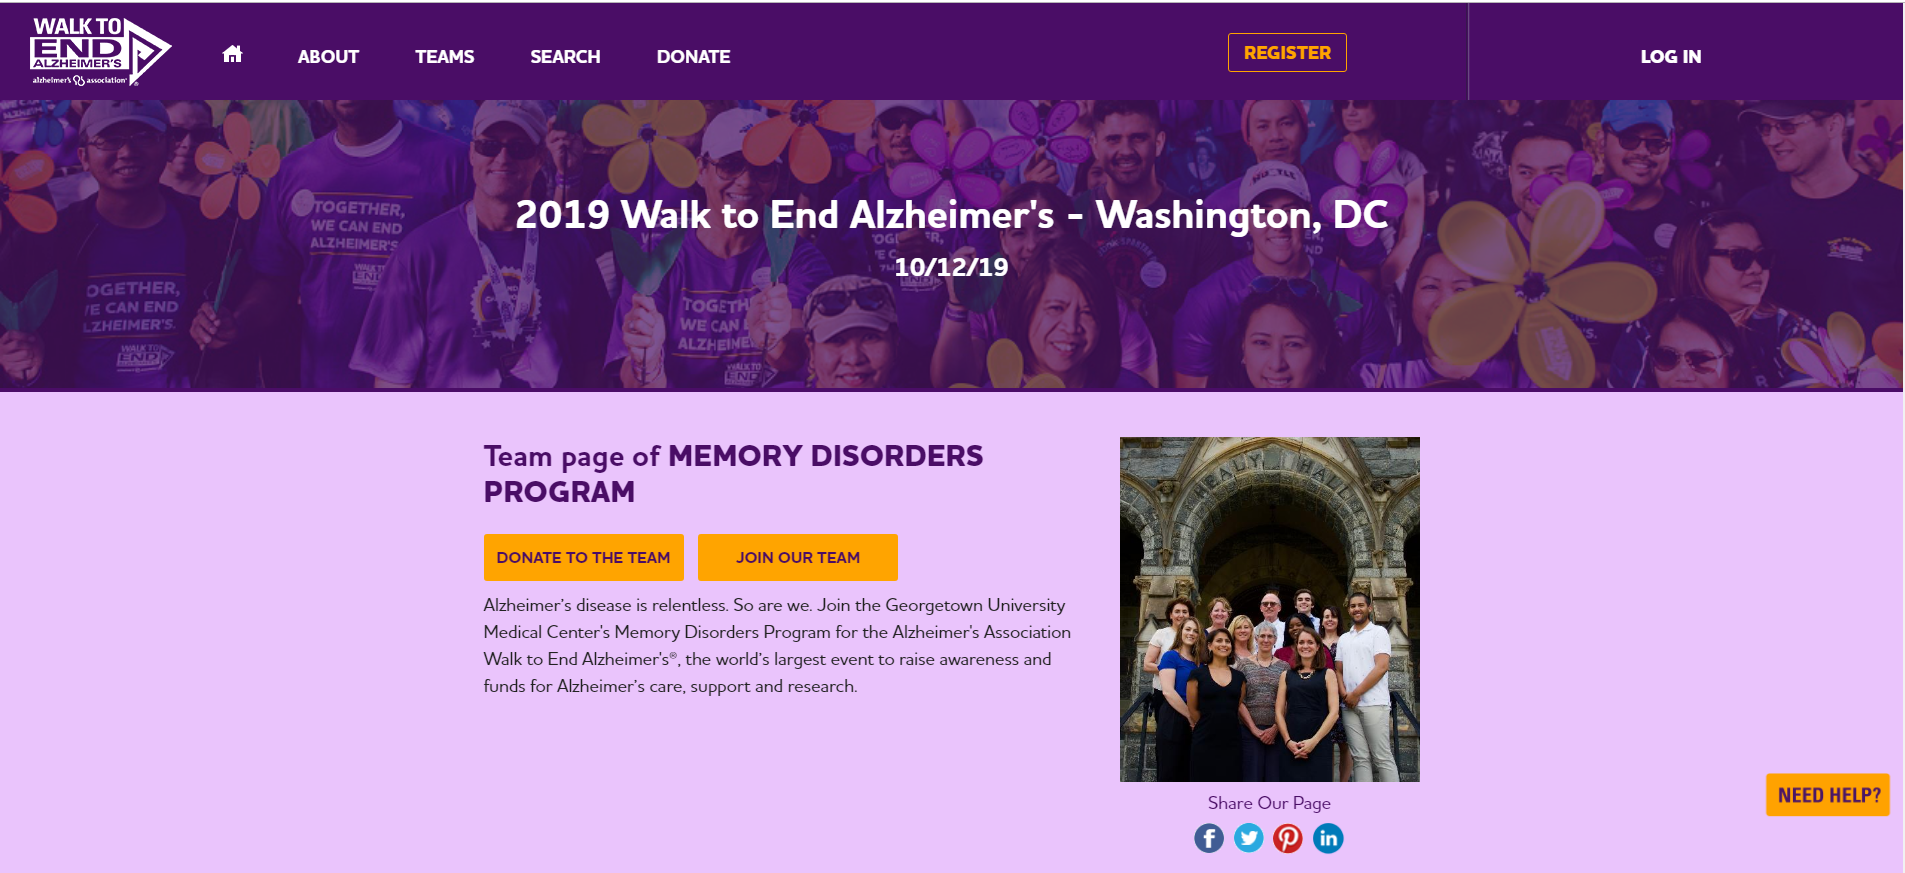 2019 Walk to End Alzheimers, on October 12, 2019, Memory Disorders Program team page.